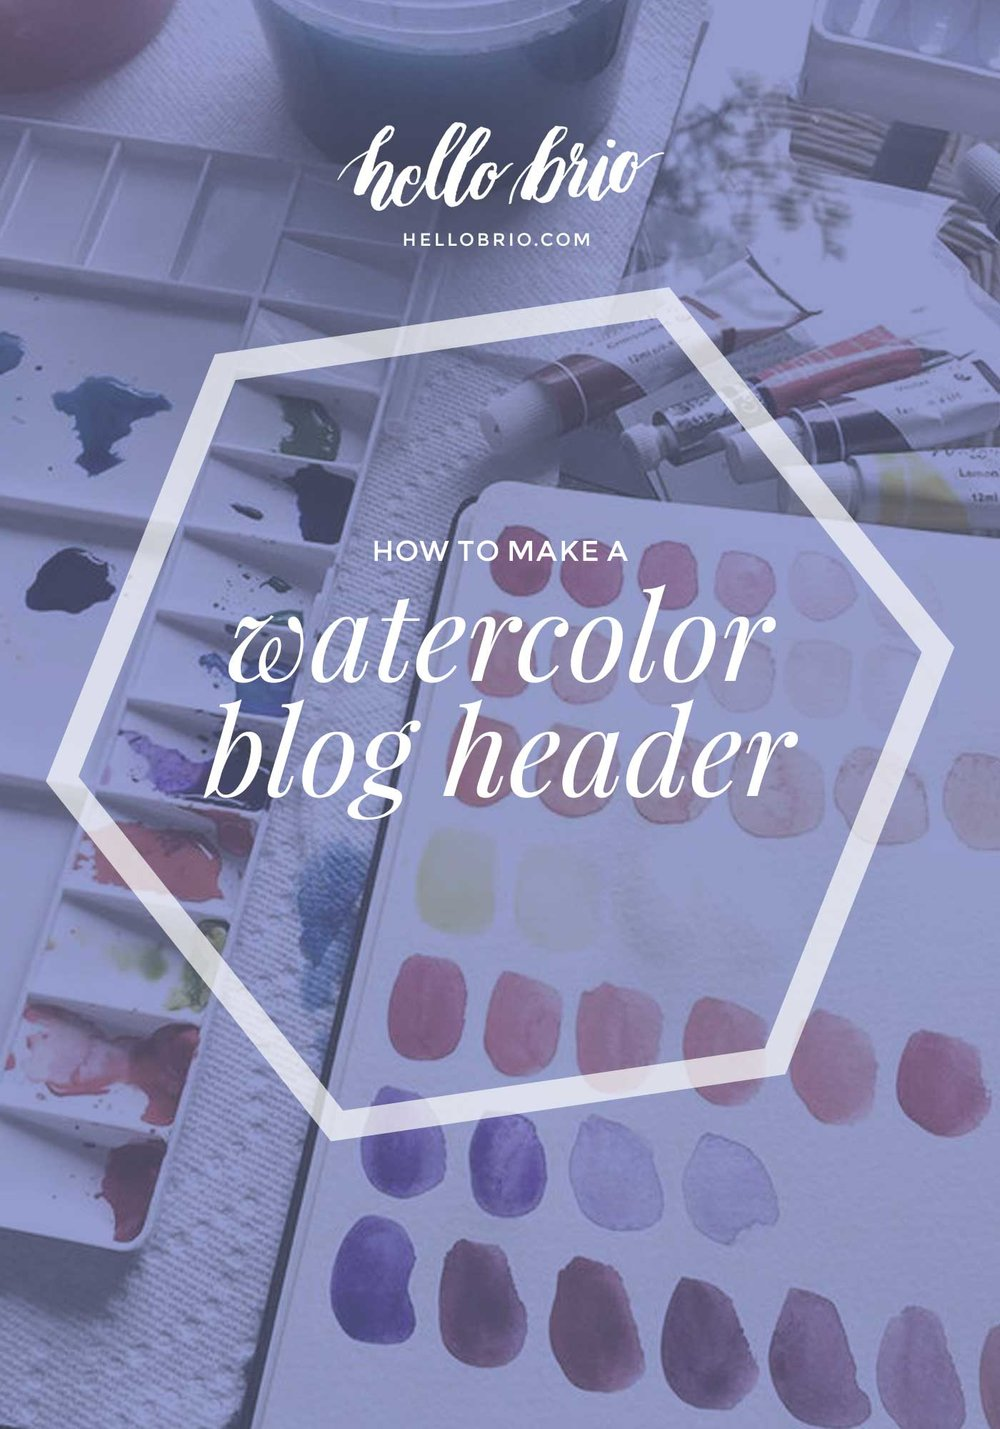 watercolor-blog-header-tutorial.jpg